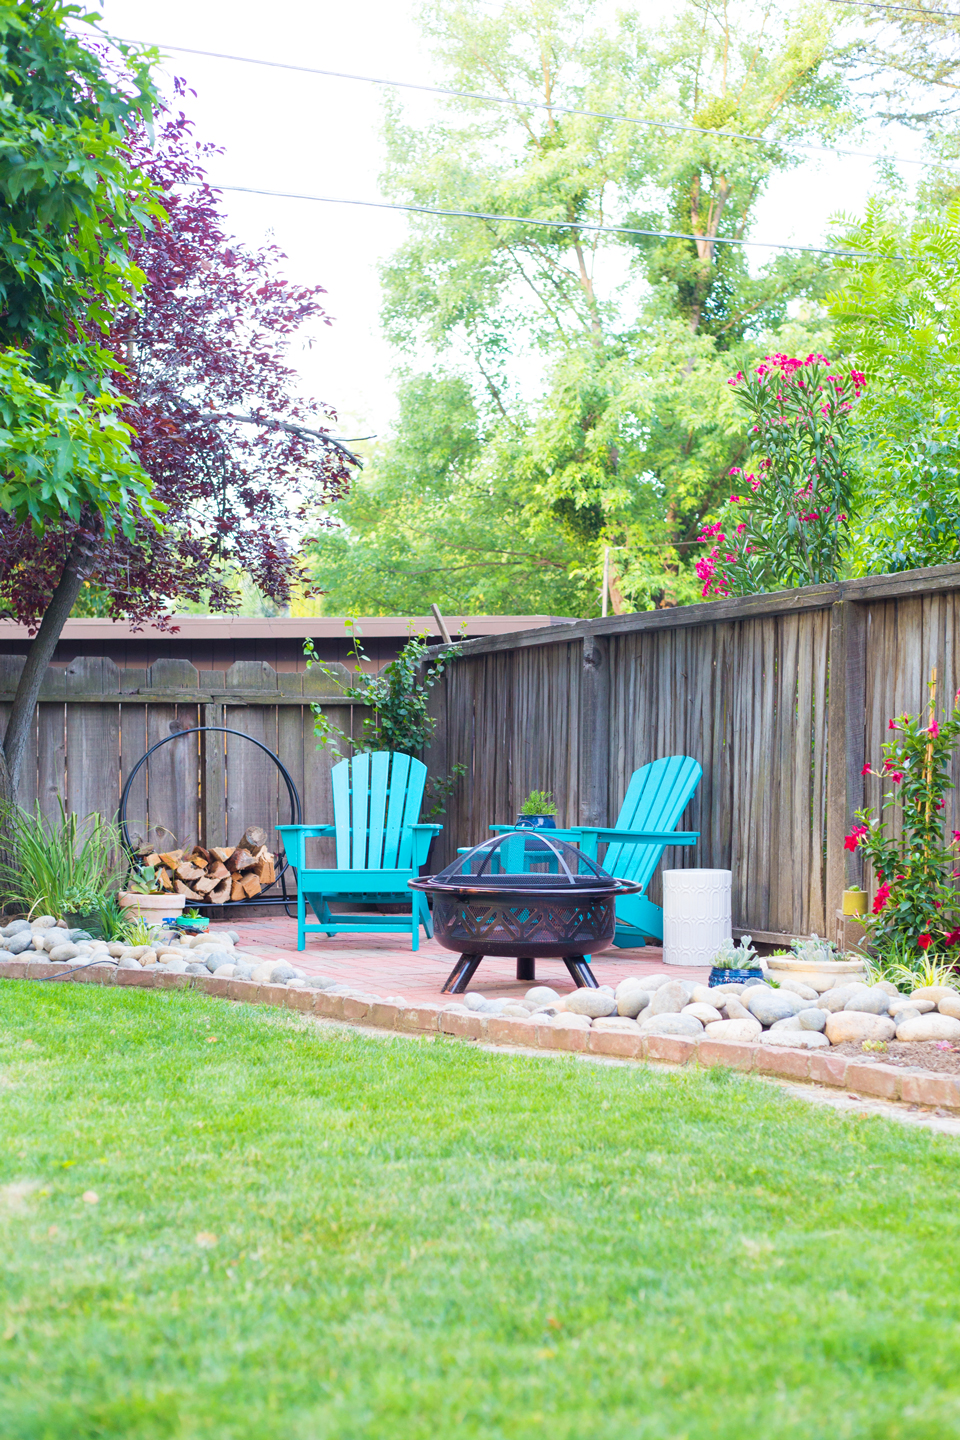 An after image of a backyard patio with firepit